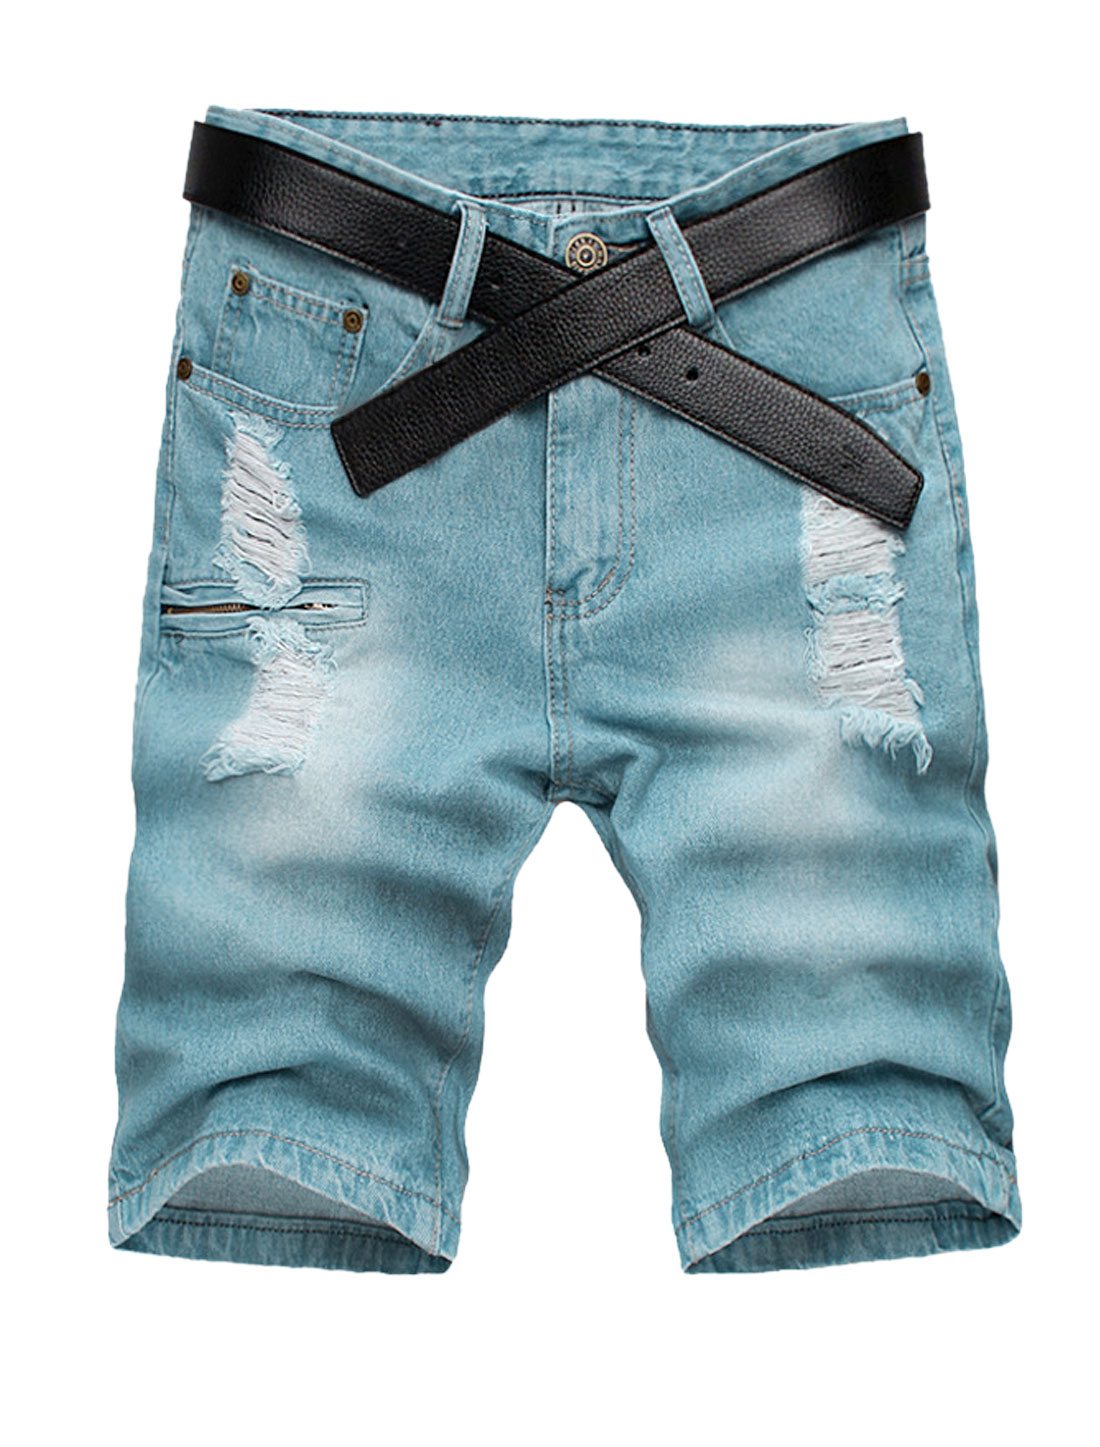 Men Zip Fly Distressed Detail Pockets Casual Jean Shorts Blue W30